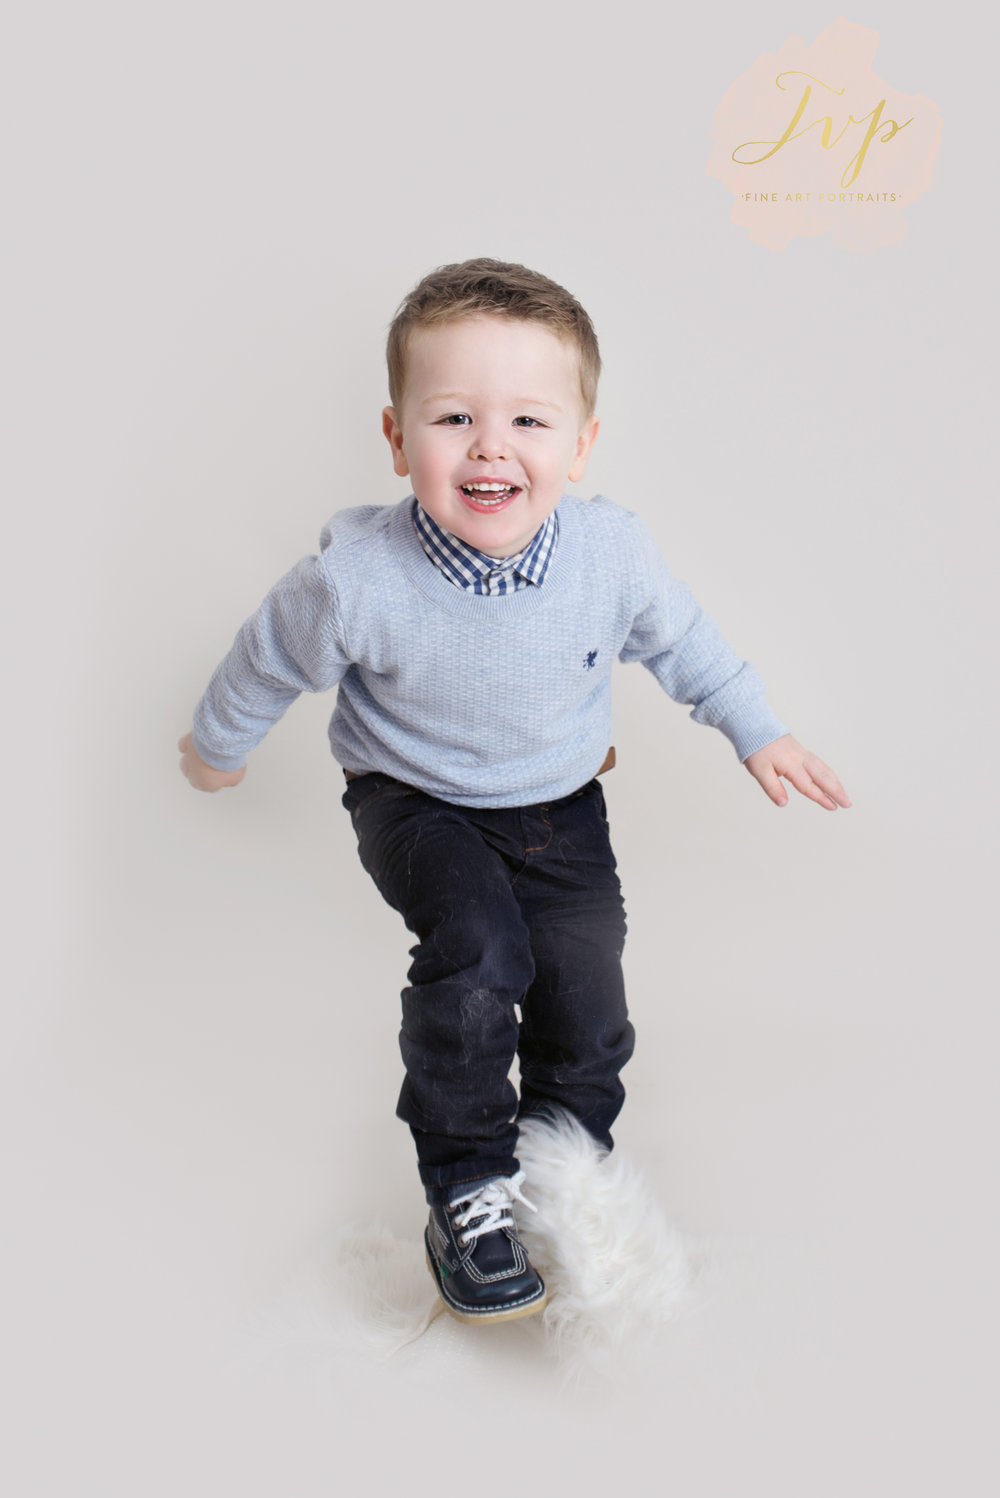 jump-family-photographer-glasgow